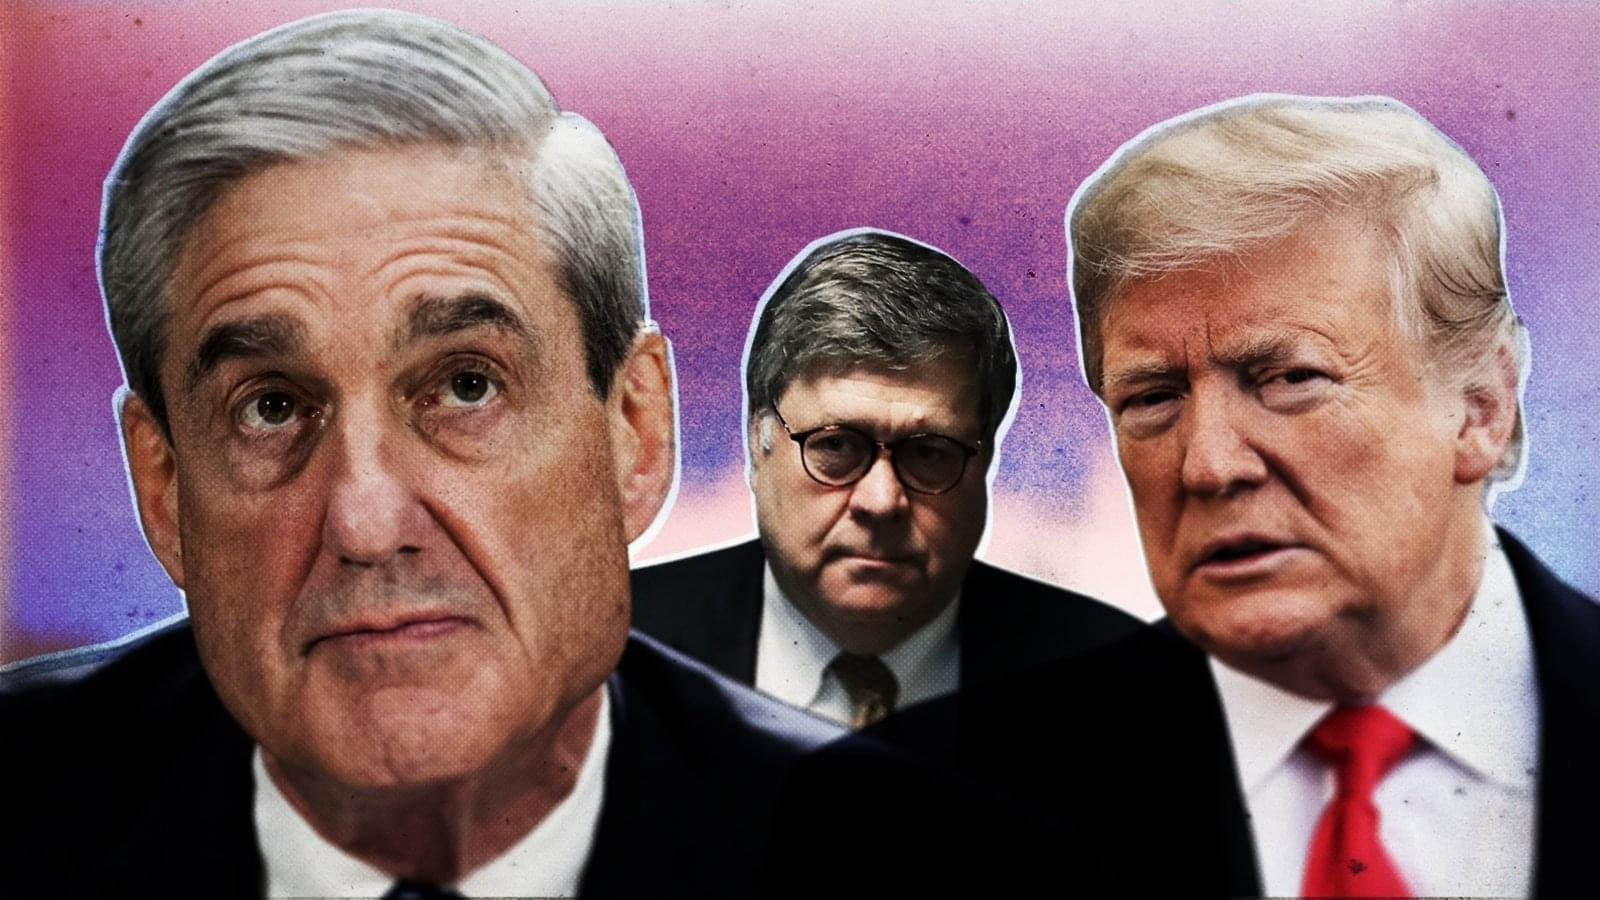 Dems grapple with Mueller's findings; GOP exclaims 'move on'